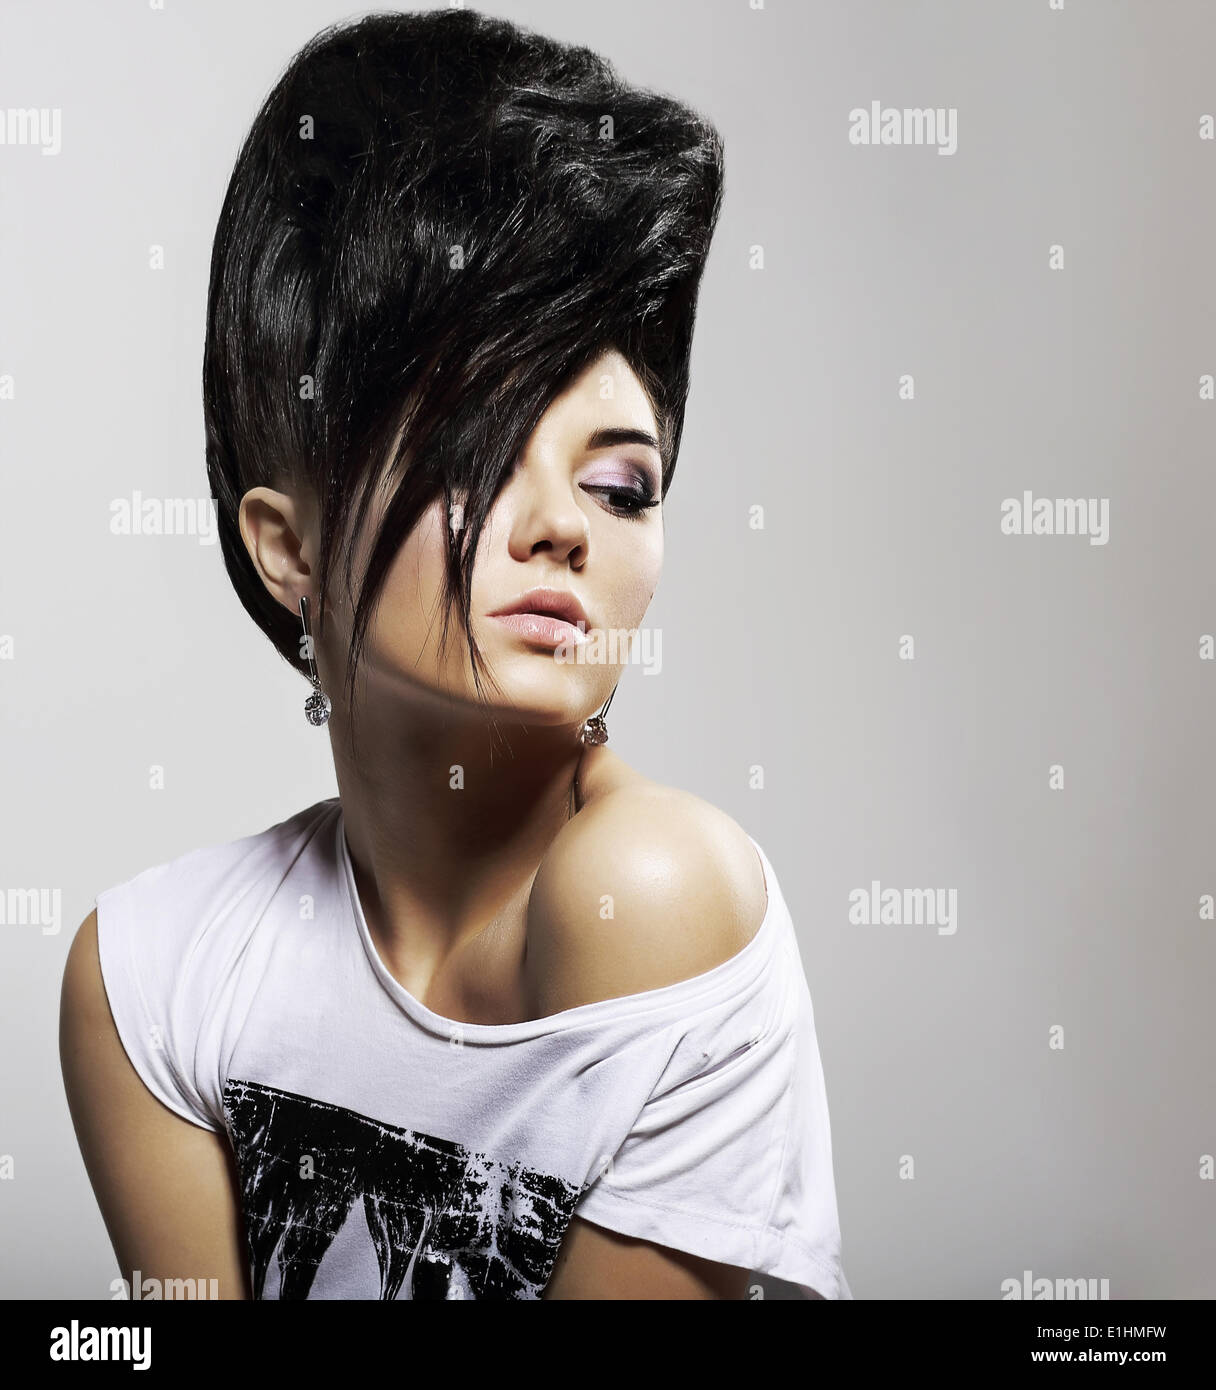 Updo Black Hair. Stylish Woman with Trendy Hairstyle with Diamond Earrings - Stock Image